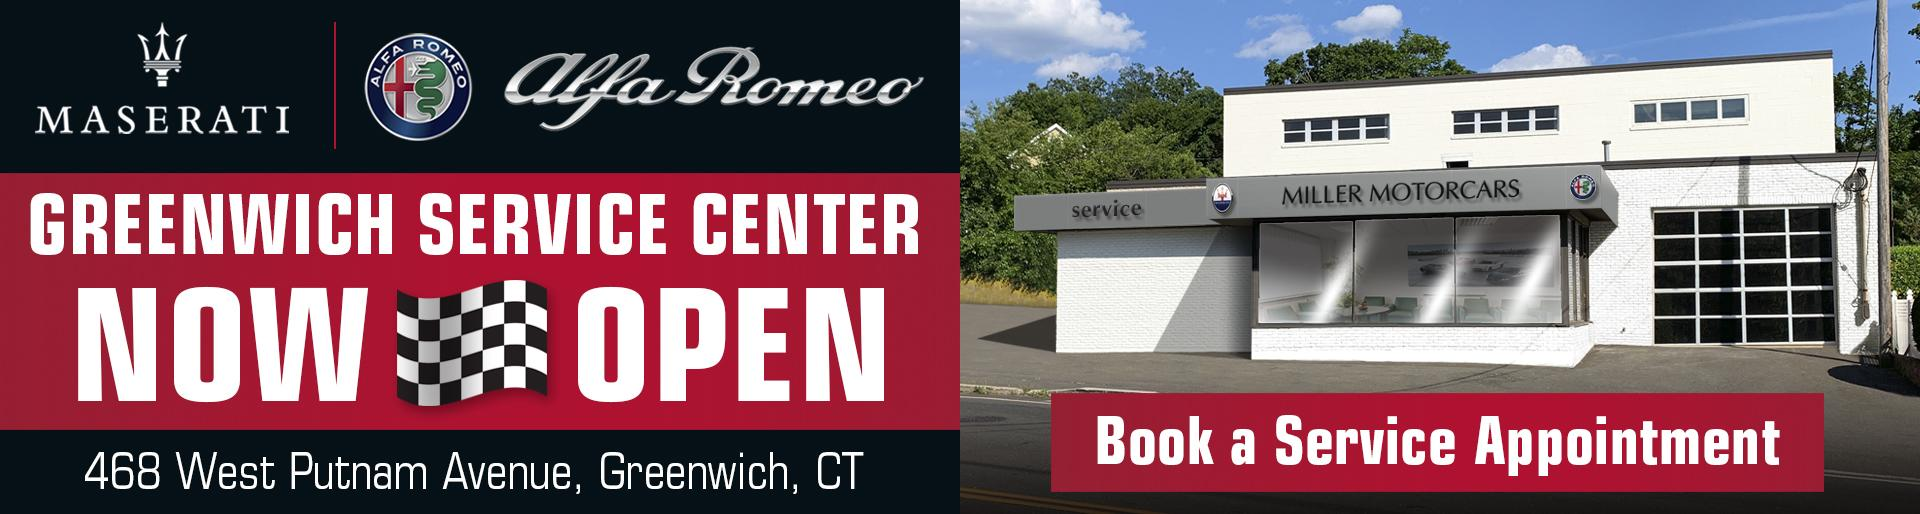 Greenwich Service Center Now Open! Book a Service Appointment!